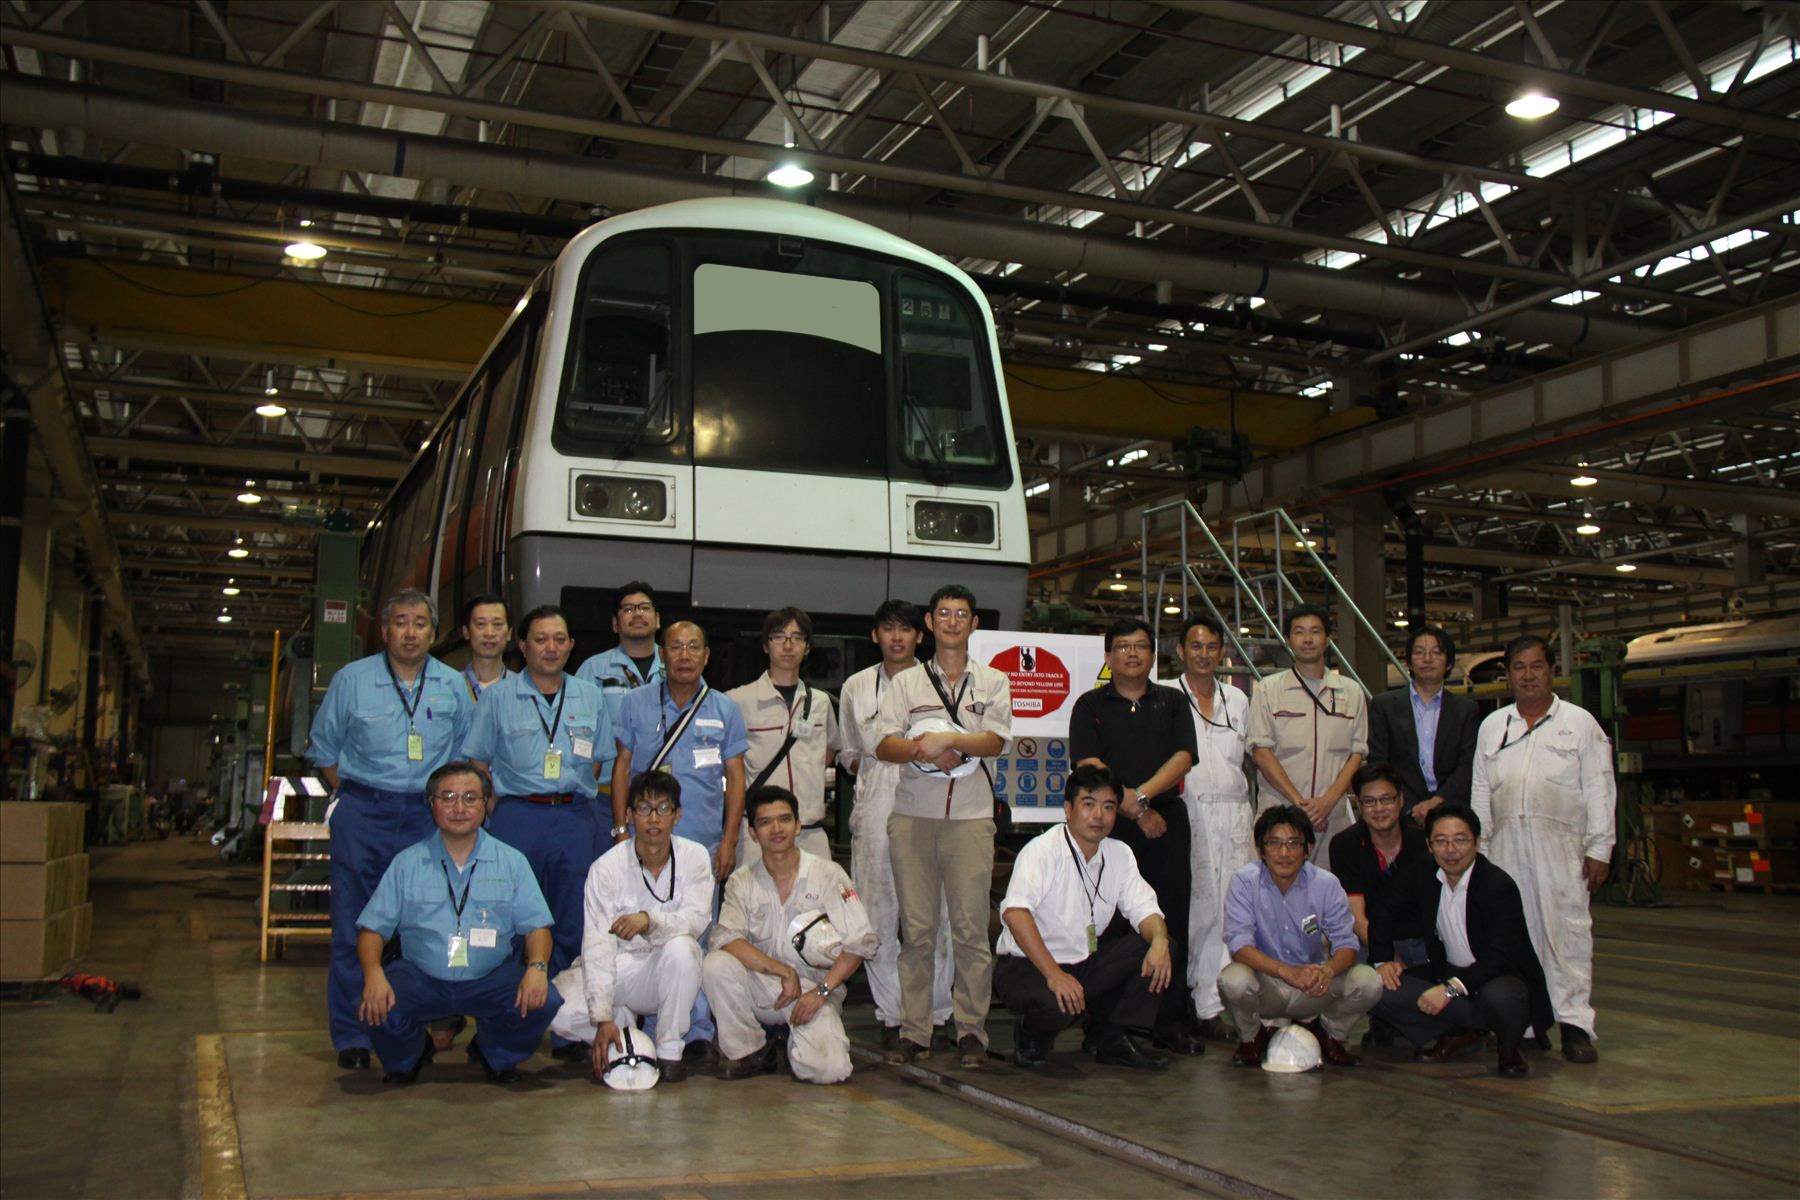 smt group originally the rolling stock function was a subset of smt technical services pte since her establishment in year 2013 smt rolling stock pte was